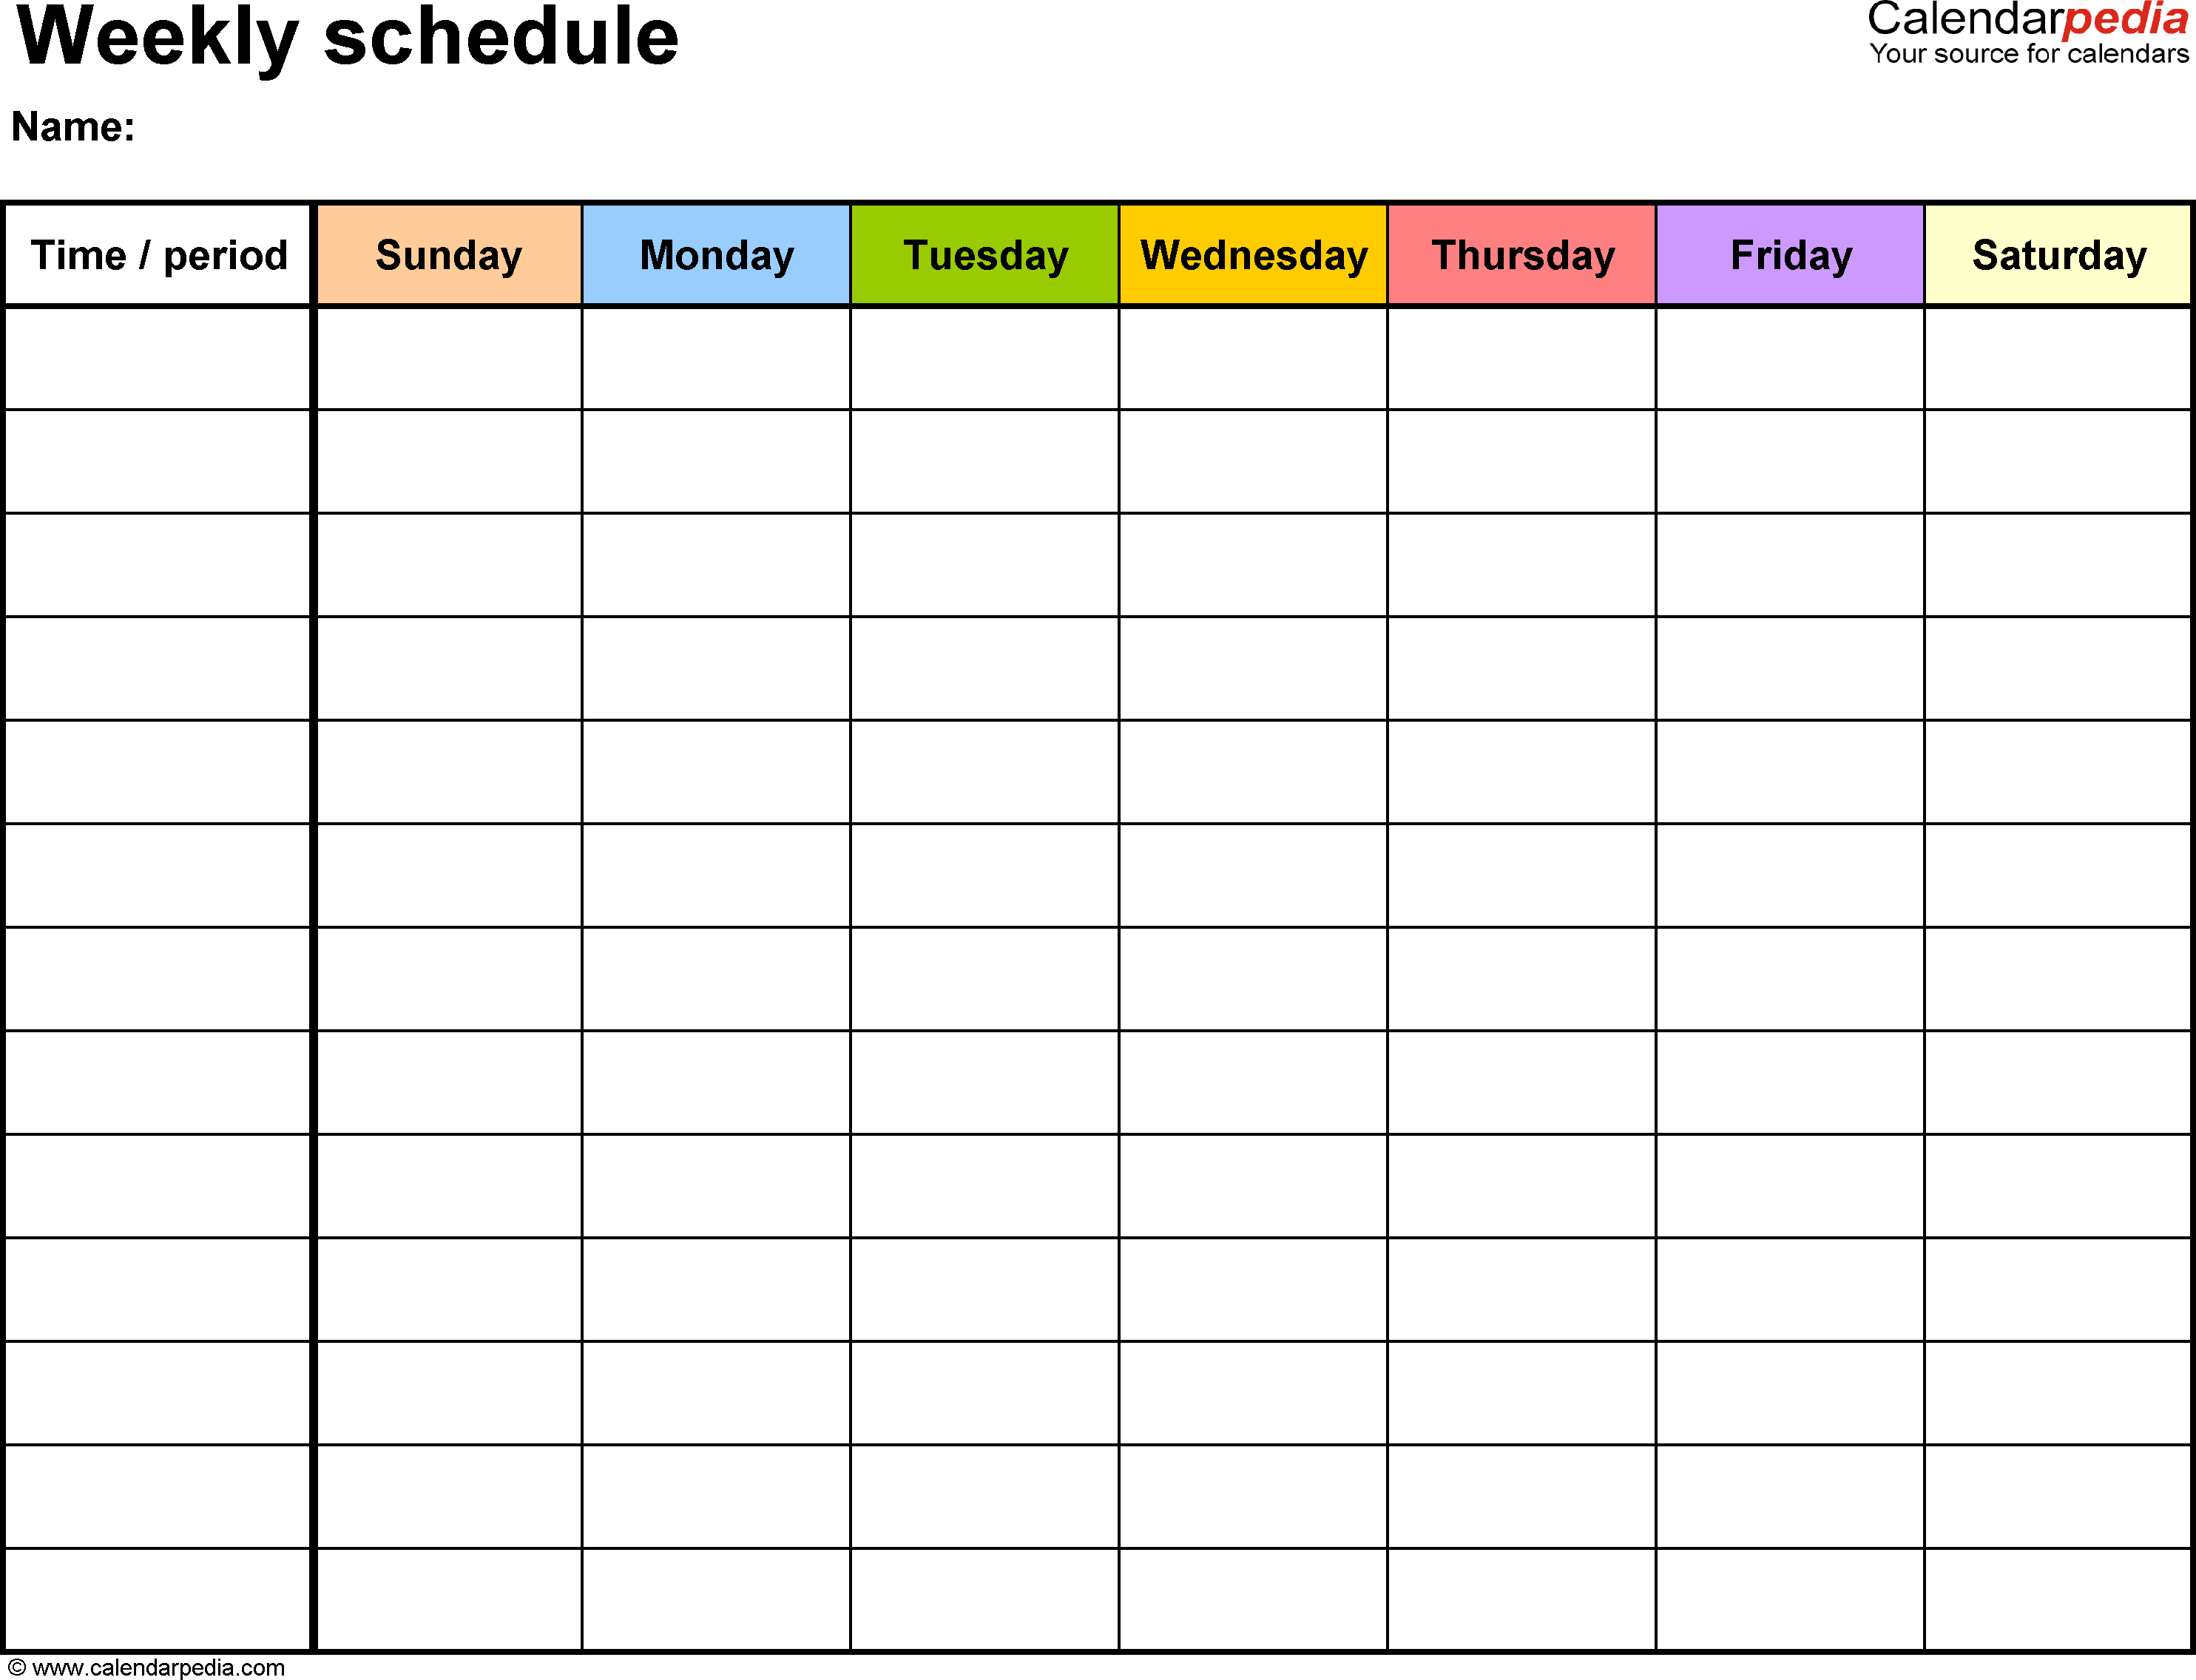 Free Weekly Schedule Templates For Excel - 18 Templates regarding Monthly Calendar Template Kids